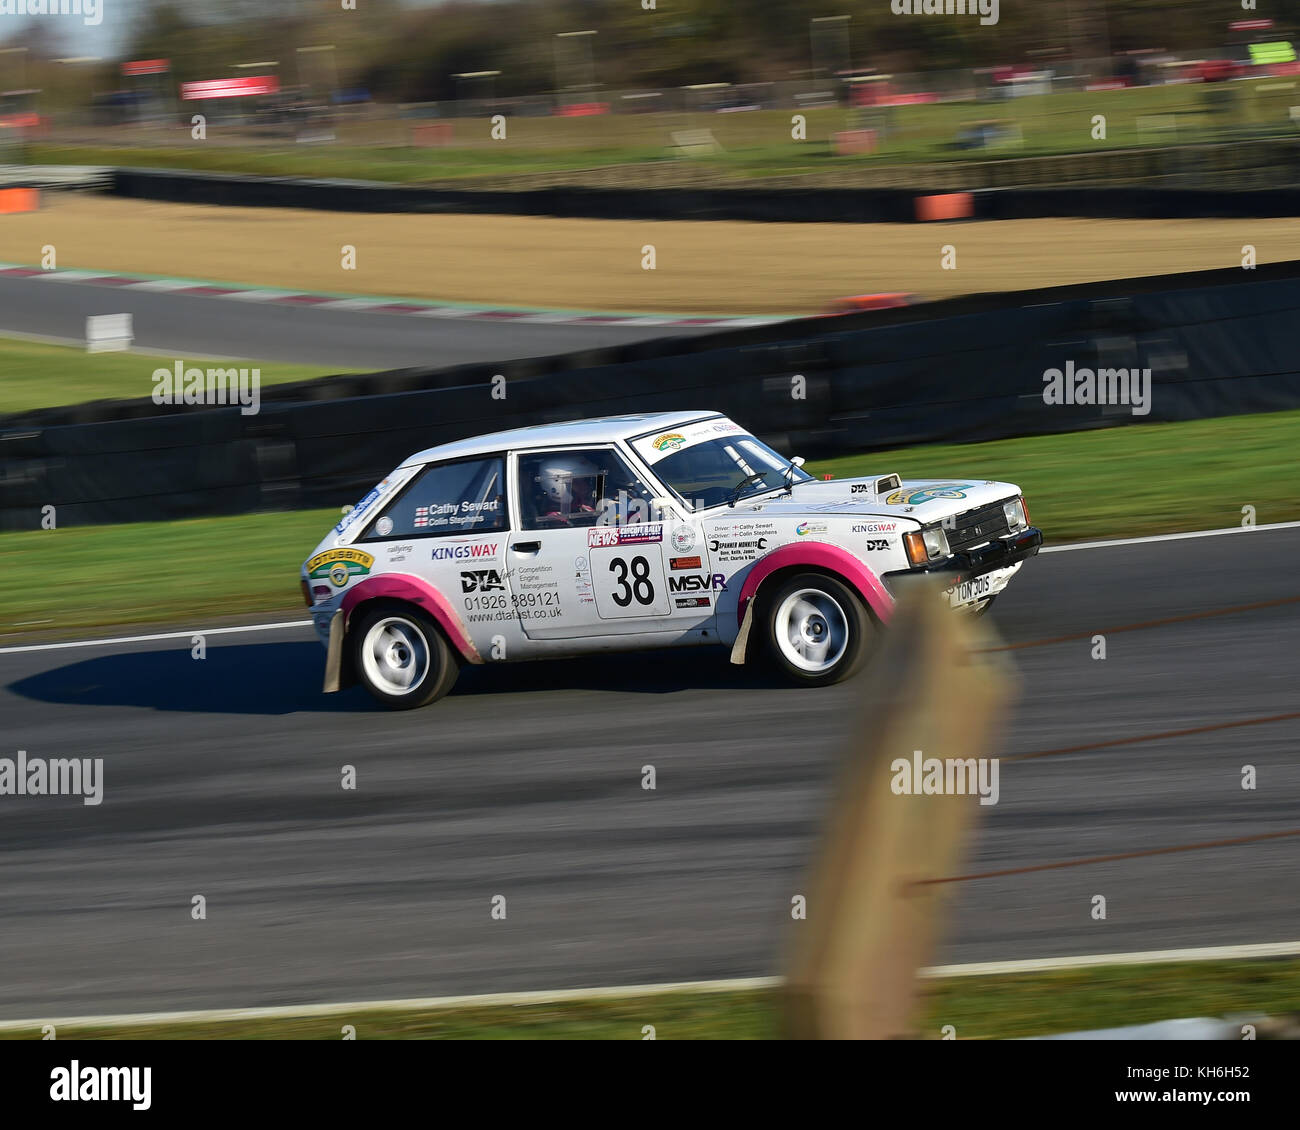 Cathy Sewart, Colin Stephens, Talbot Sunbeam, MGJ Rally Stages, Chelmsford Motor Club, Brands Hatch,  Saturday, - Stock Image